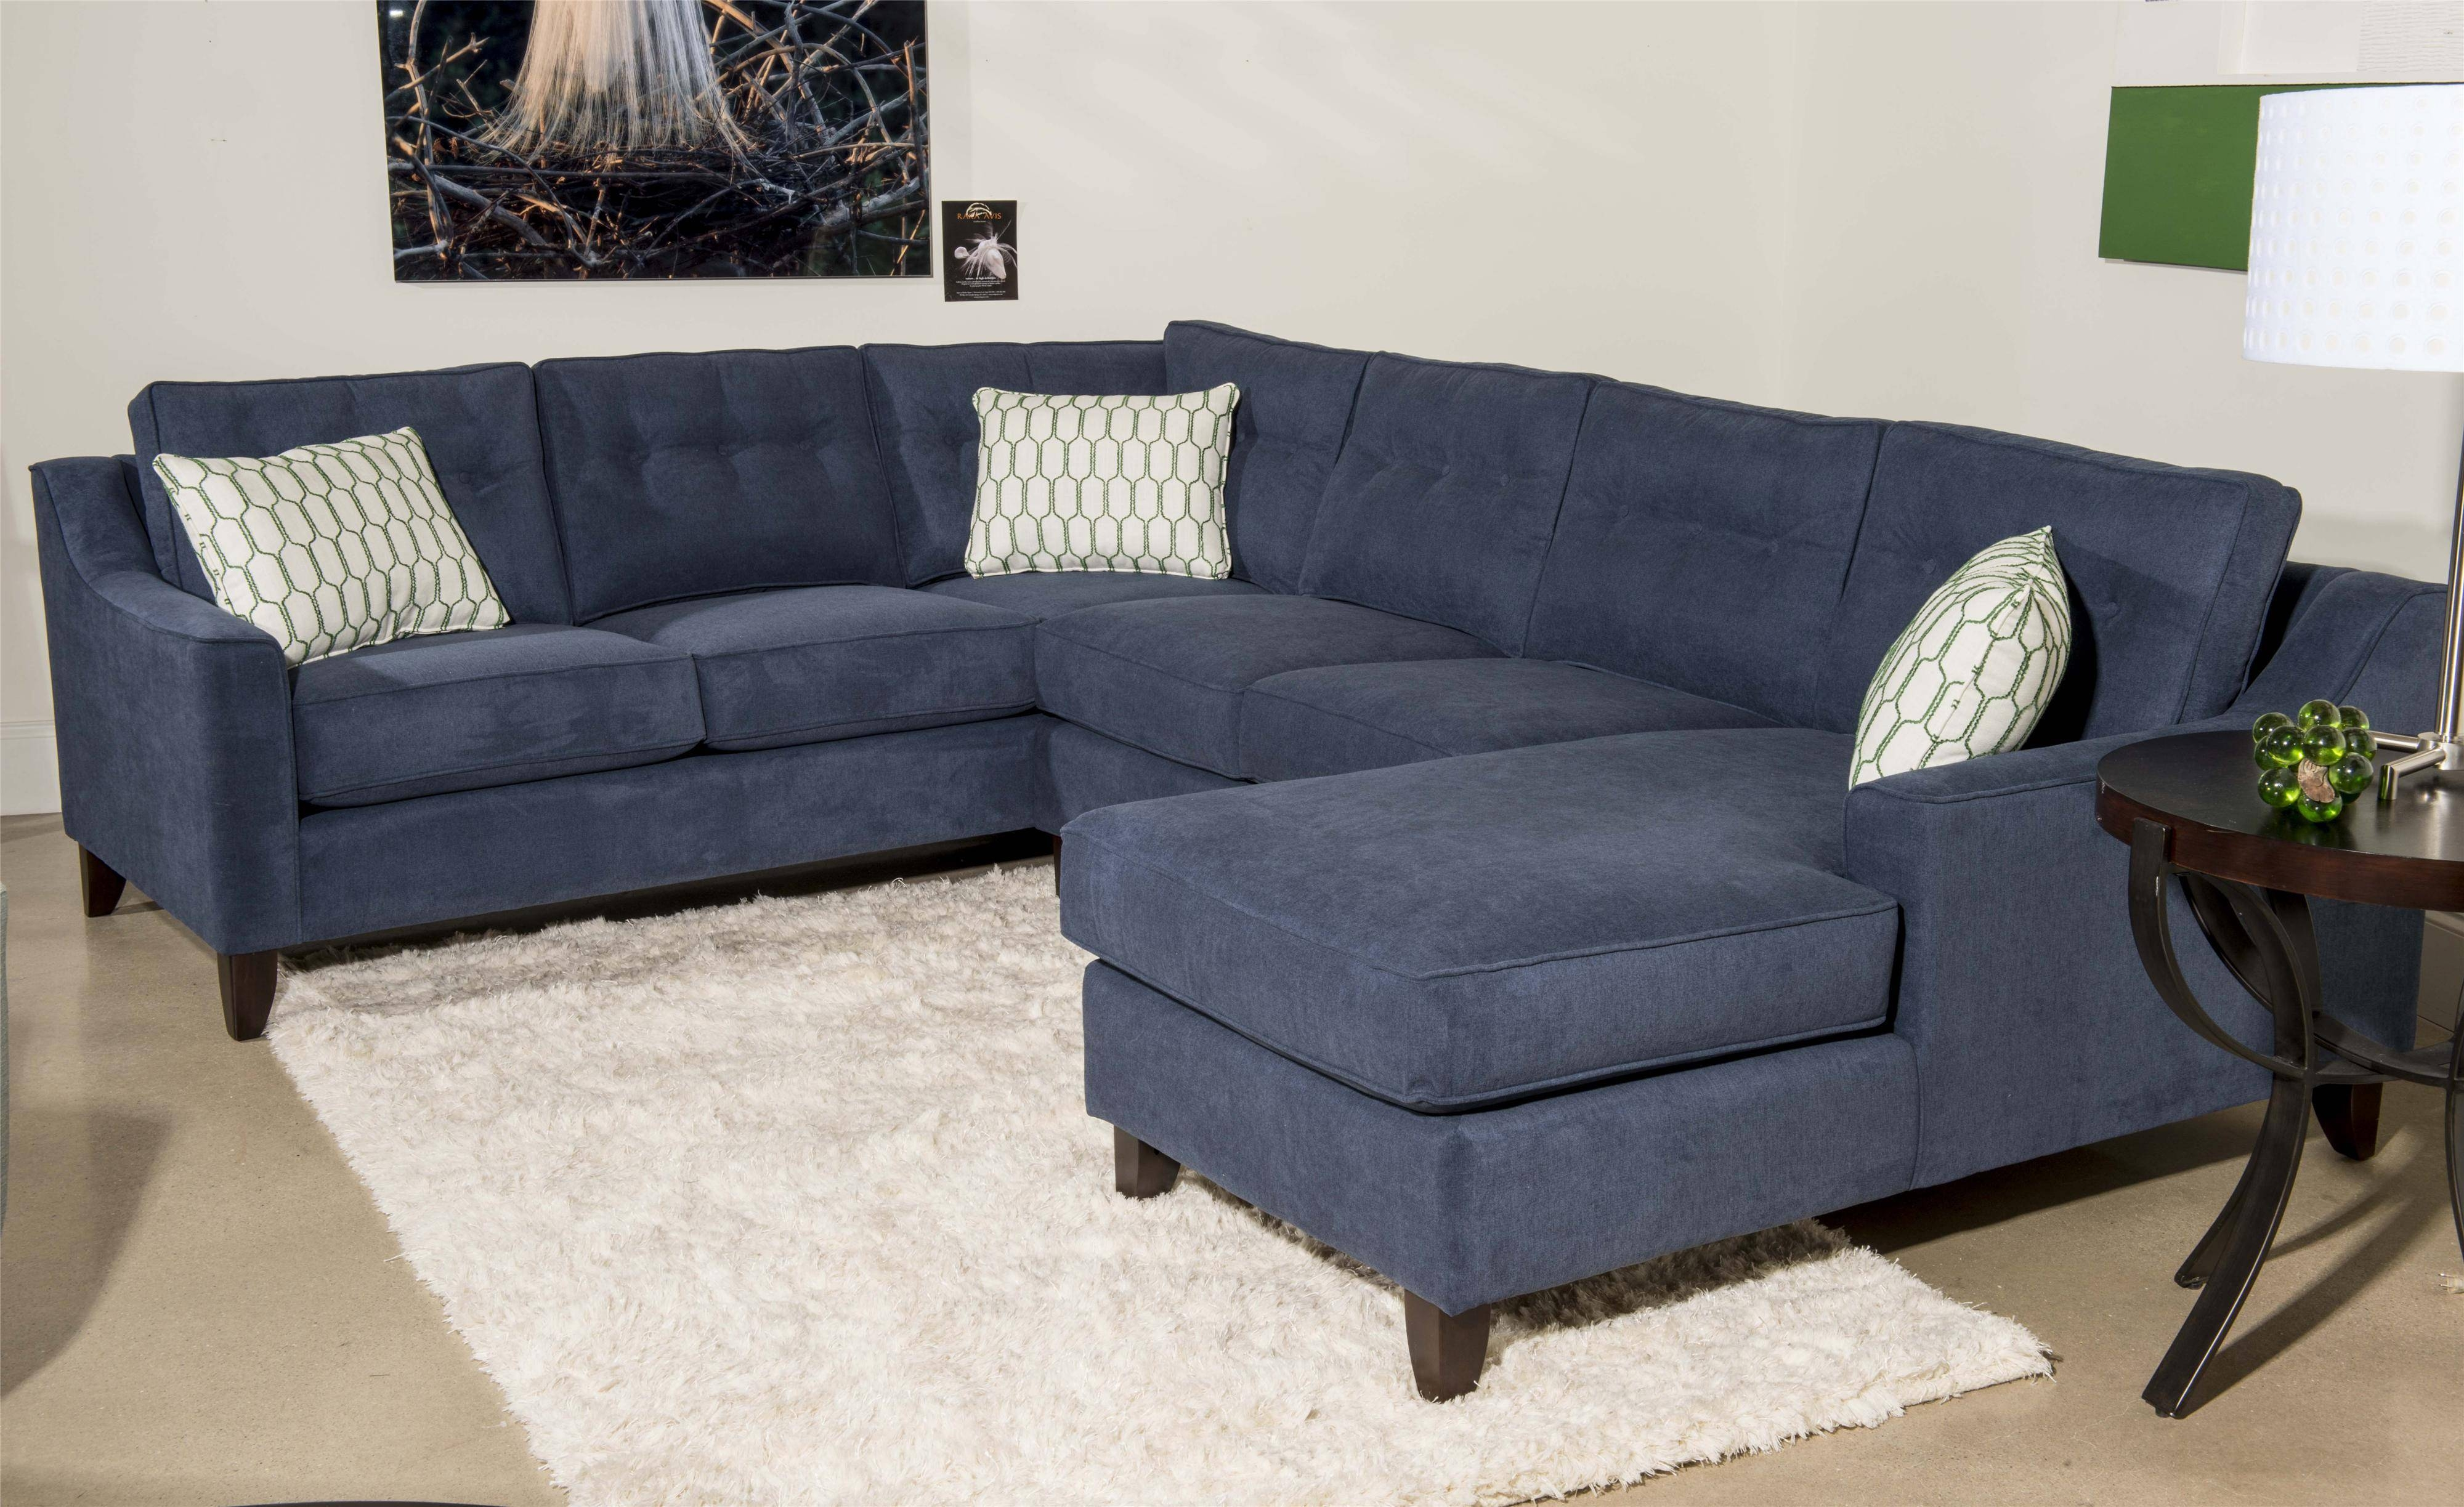 Sofas : Amazing Modern Sofa Microfiber Sectional Couch Grey within Blue Microfiber Sofas (Image 14 of 15)